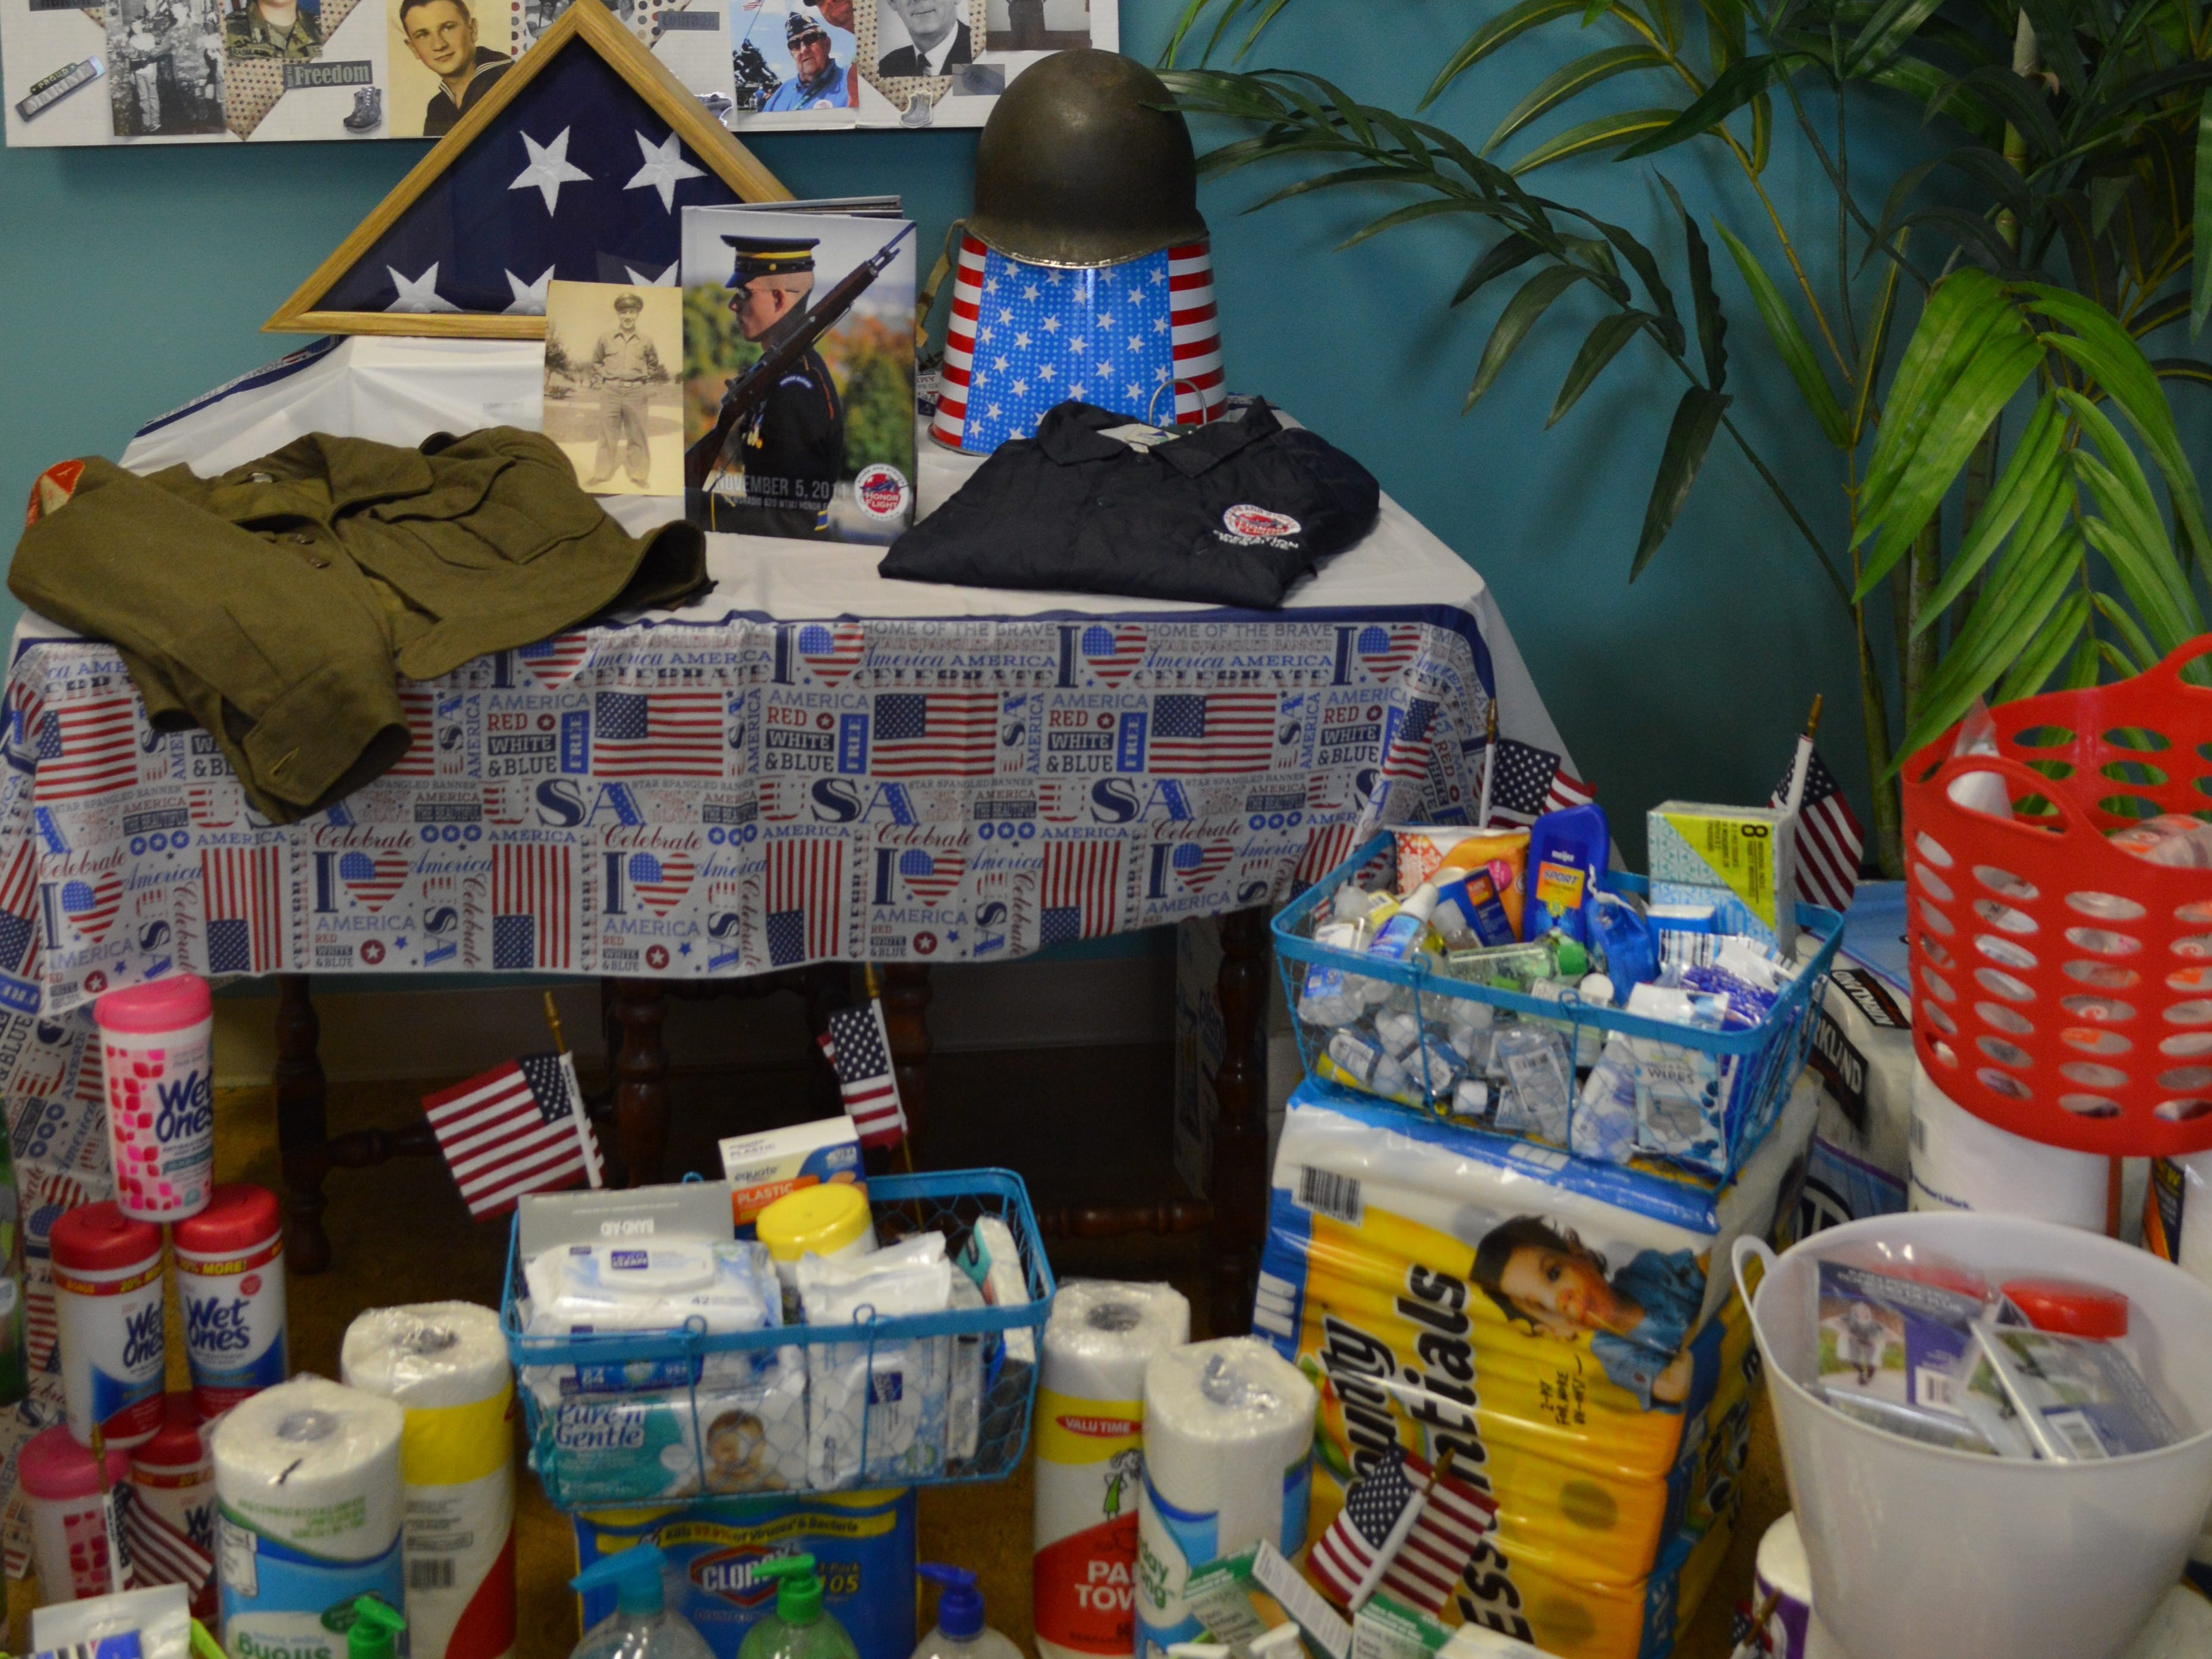 Karissa Vitale Adam, owner of Vitality Massagein Waukesha, is collecting hand sanitizer, travel tissue, paper towel, wet wipes, sunscreen, ponchos, Band-Aids and Depends for veterans going on Stars and Stripes Honor Flights.